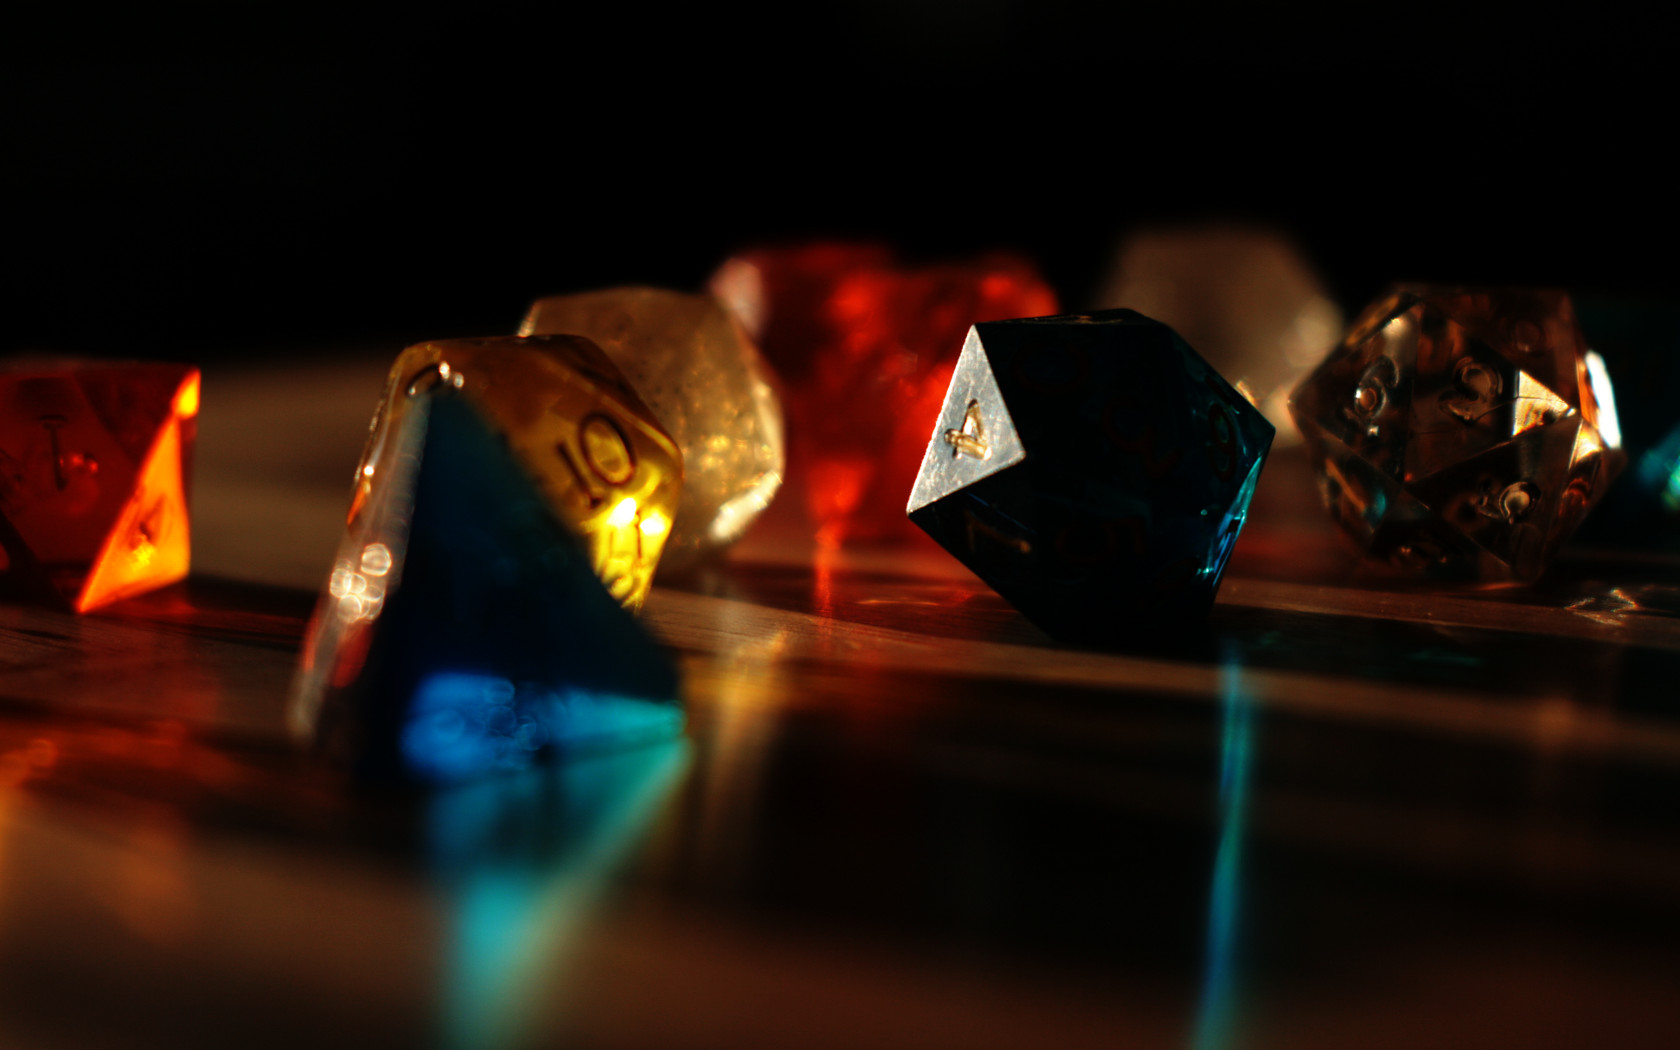 42 Rpg Dice Wallpaper On Wallpapersafari